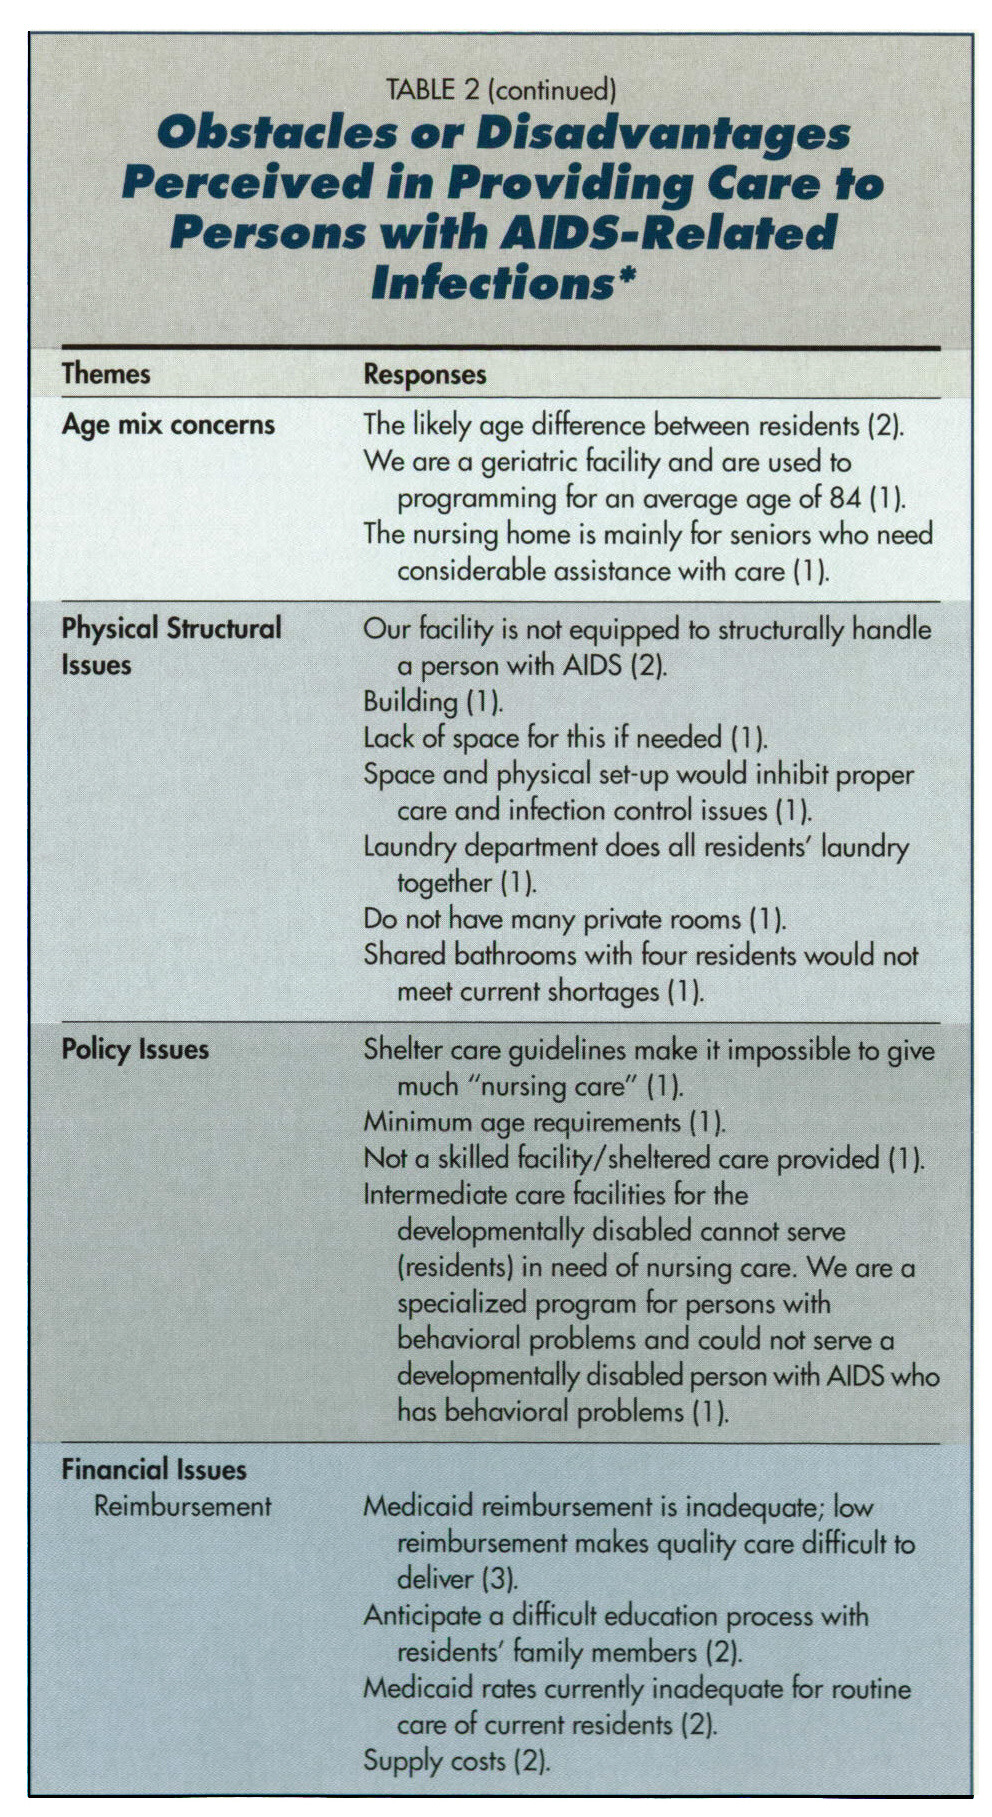 TABLE 2Obstacles or Disadvantages Perceived in Providing Care ft Persons with AIDS-Related lnfections*